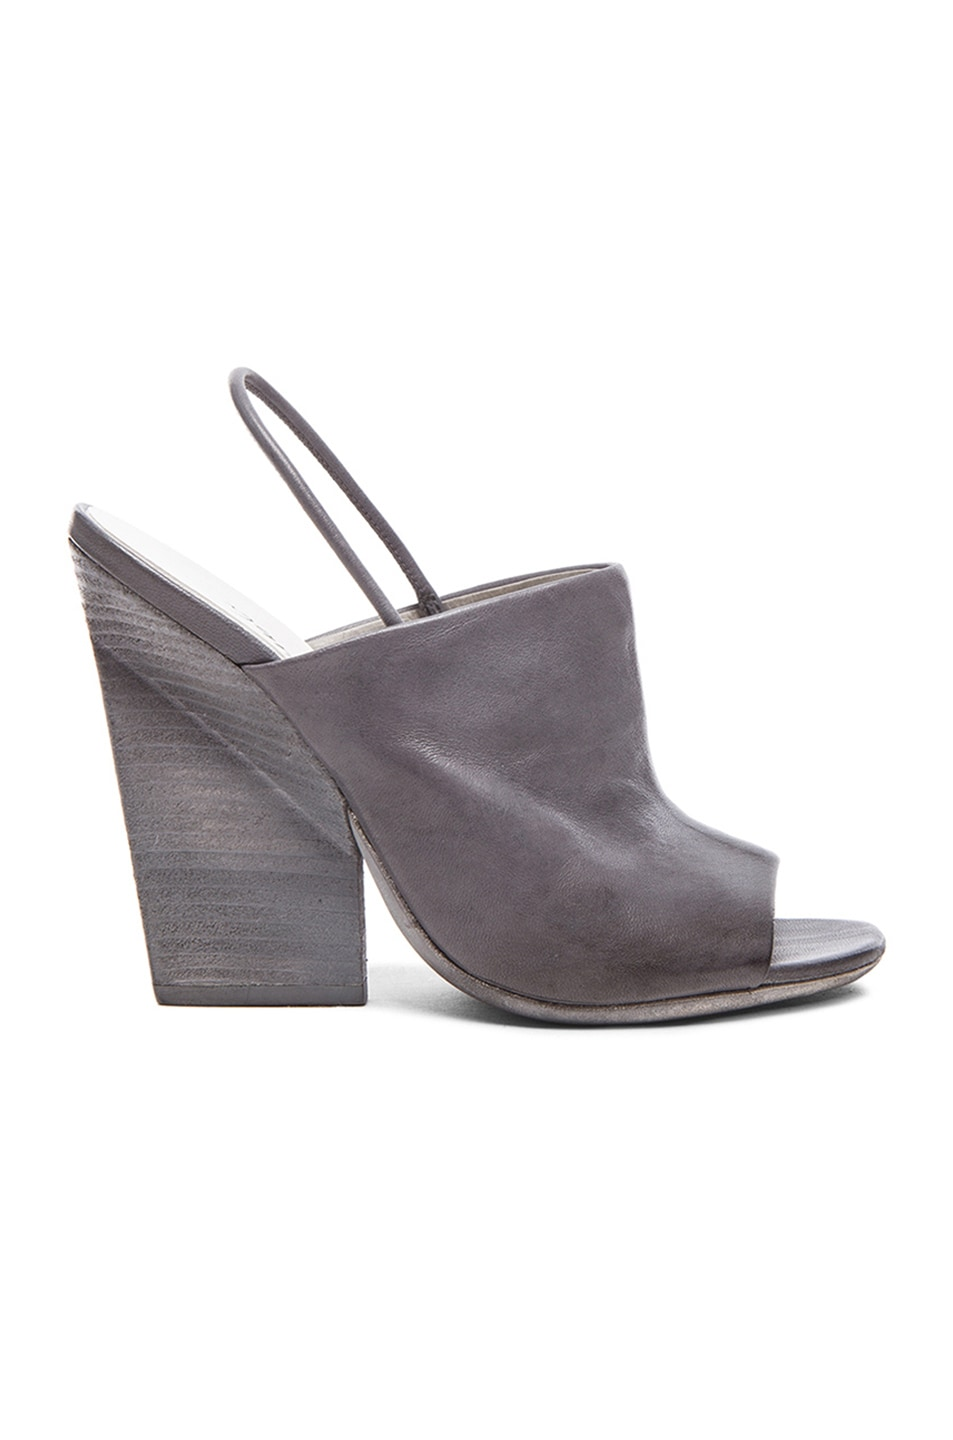 Marsèll Glove Slingback Sandals outlet view discount browse latest collections online clearance from china QXGE87